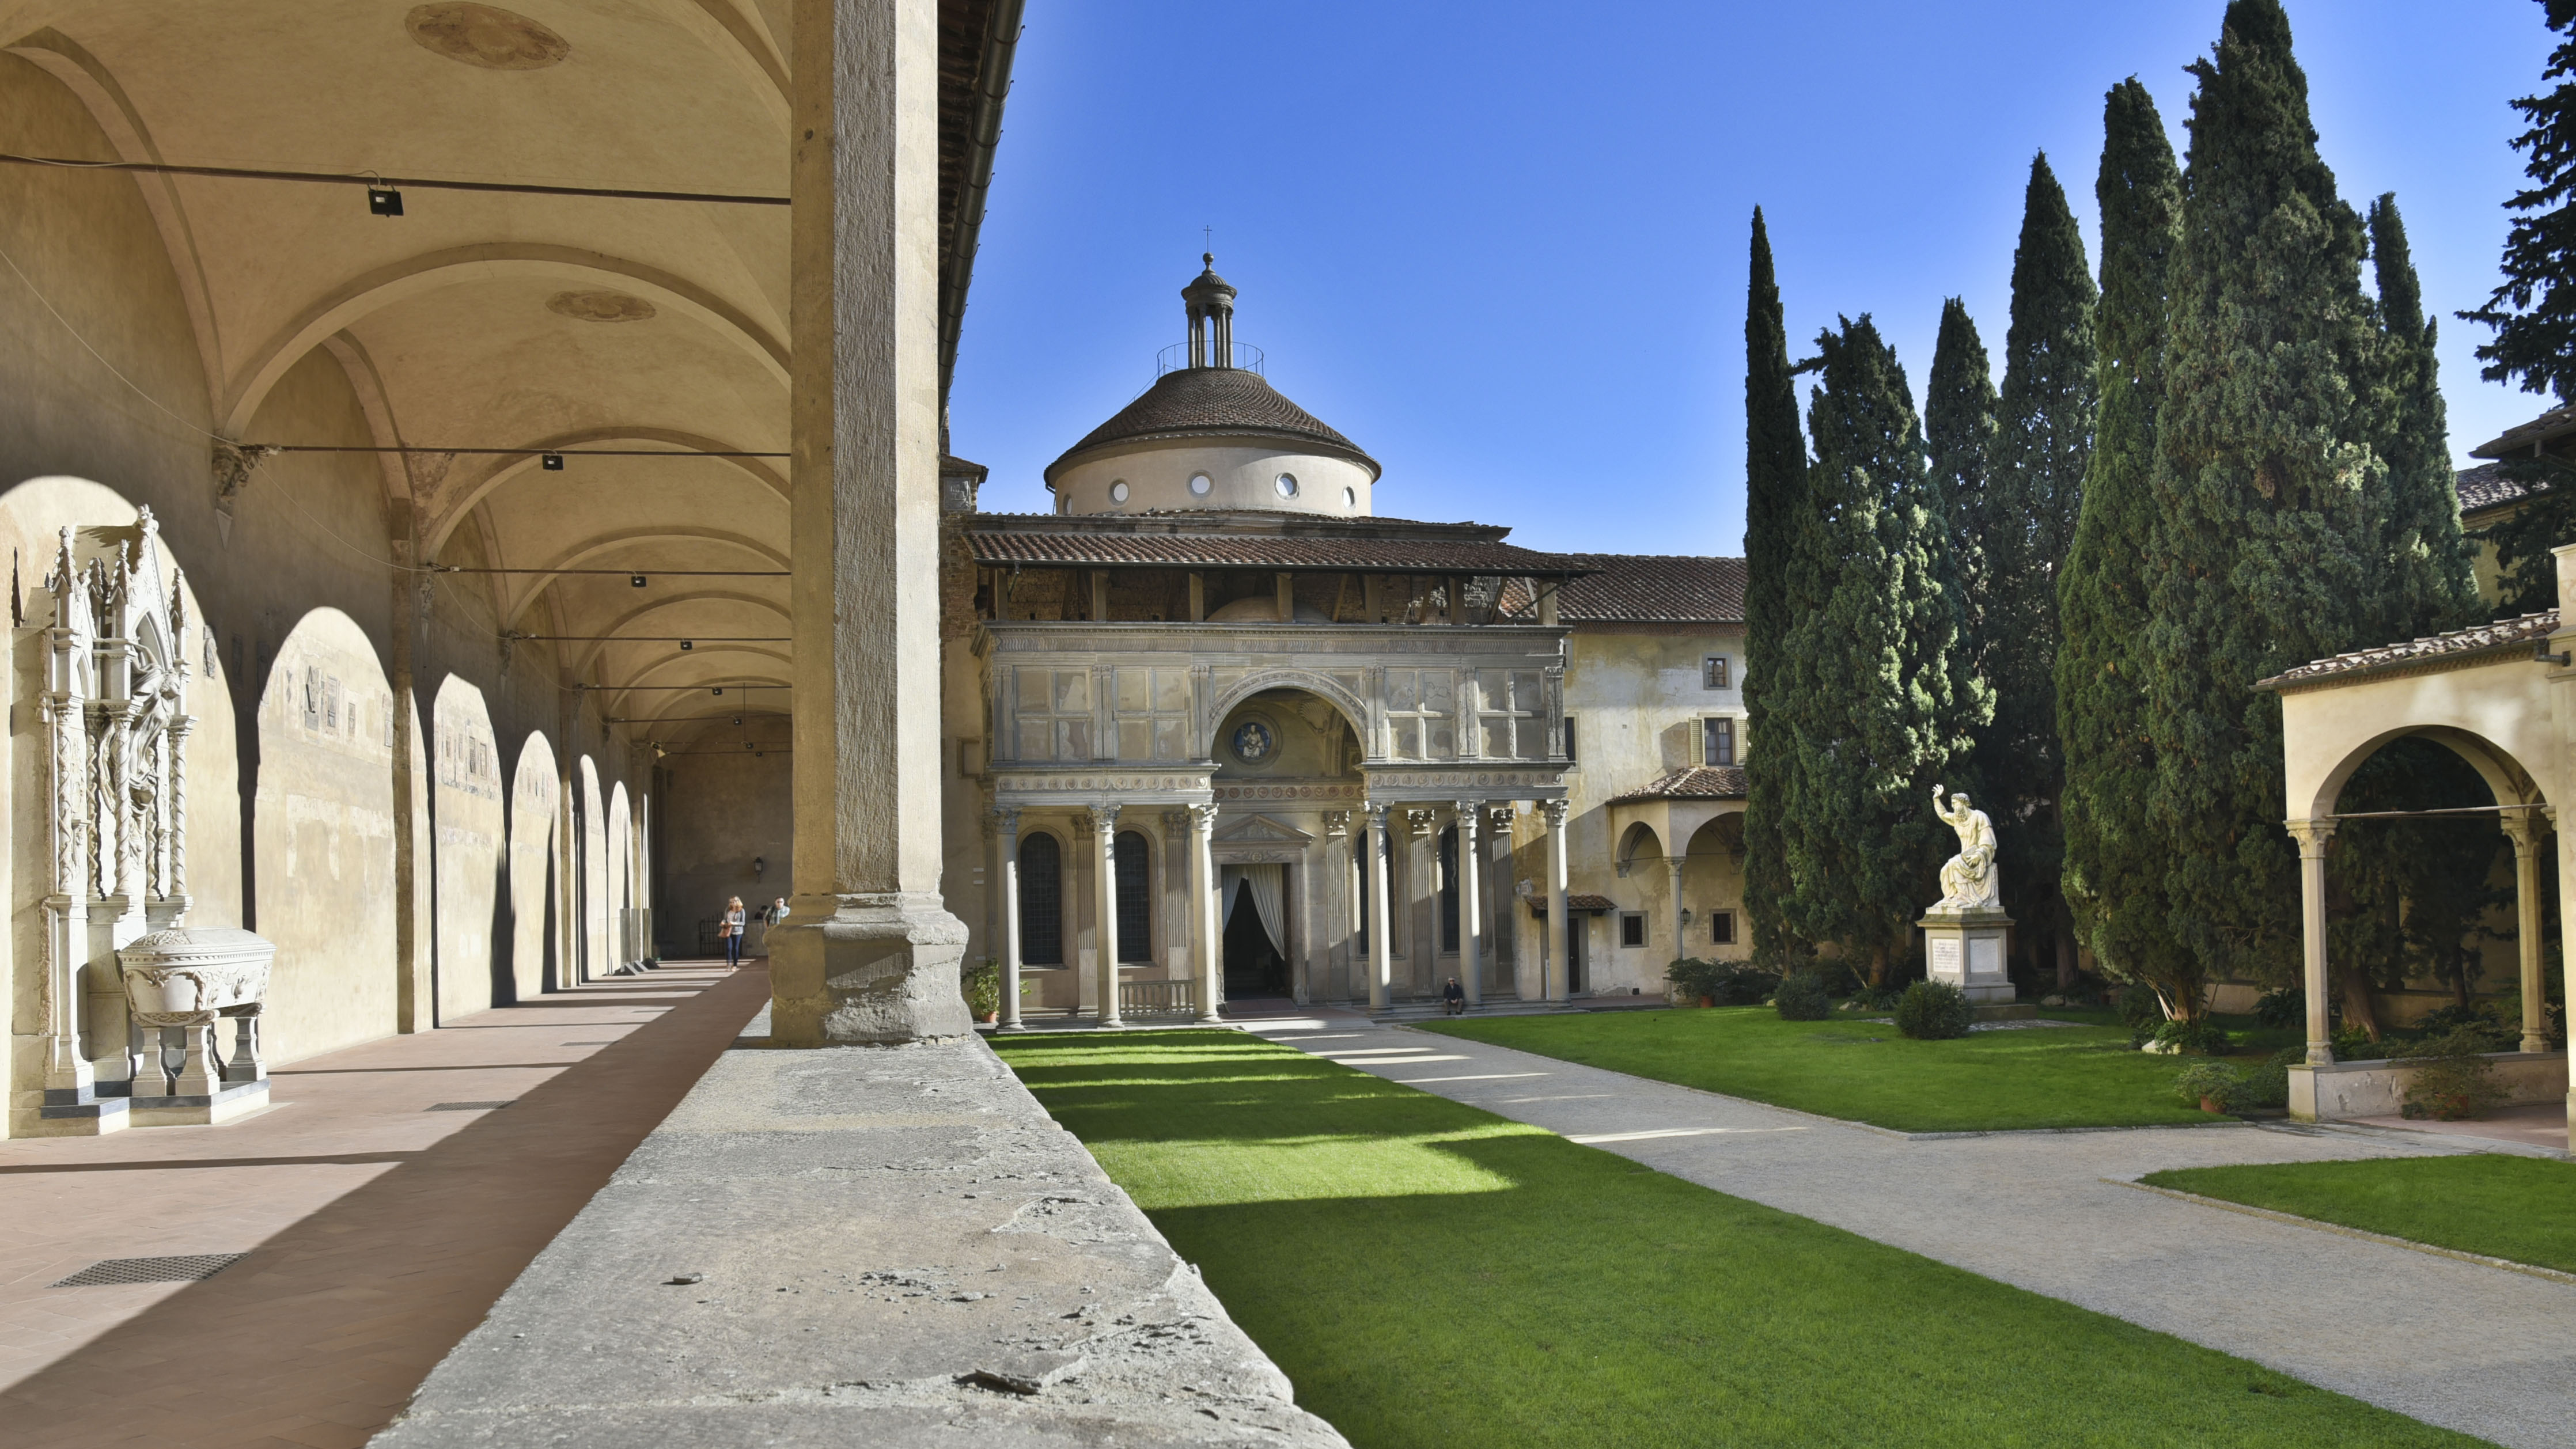 cappellapazzi_photo-credit-marcobadiani.jpg